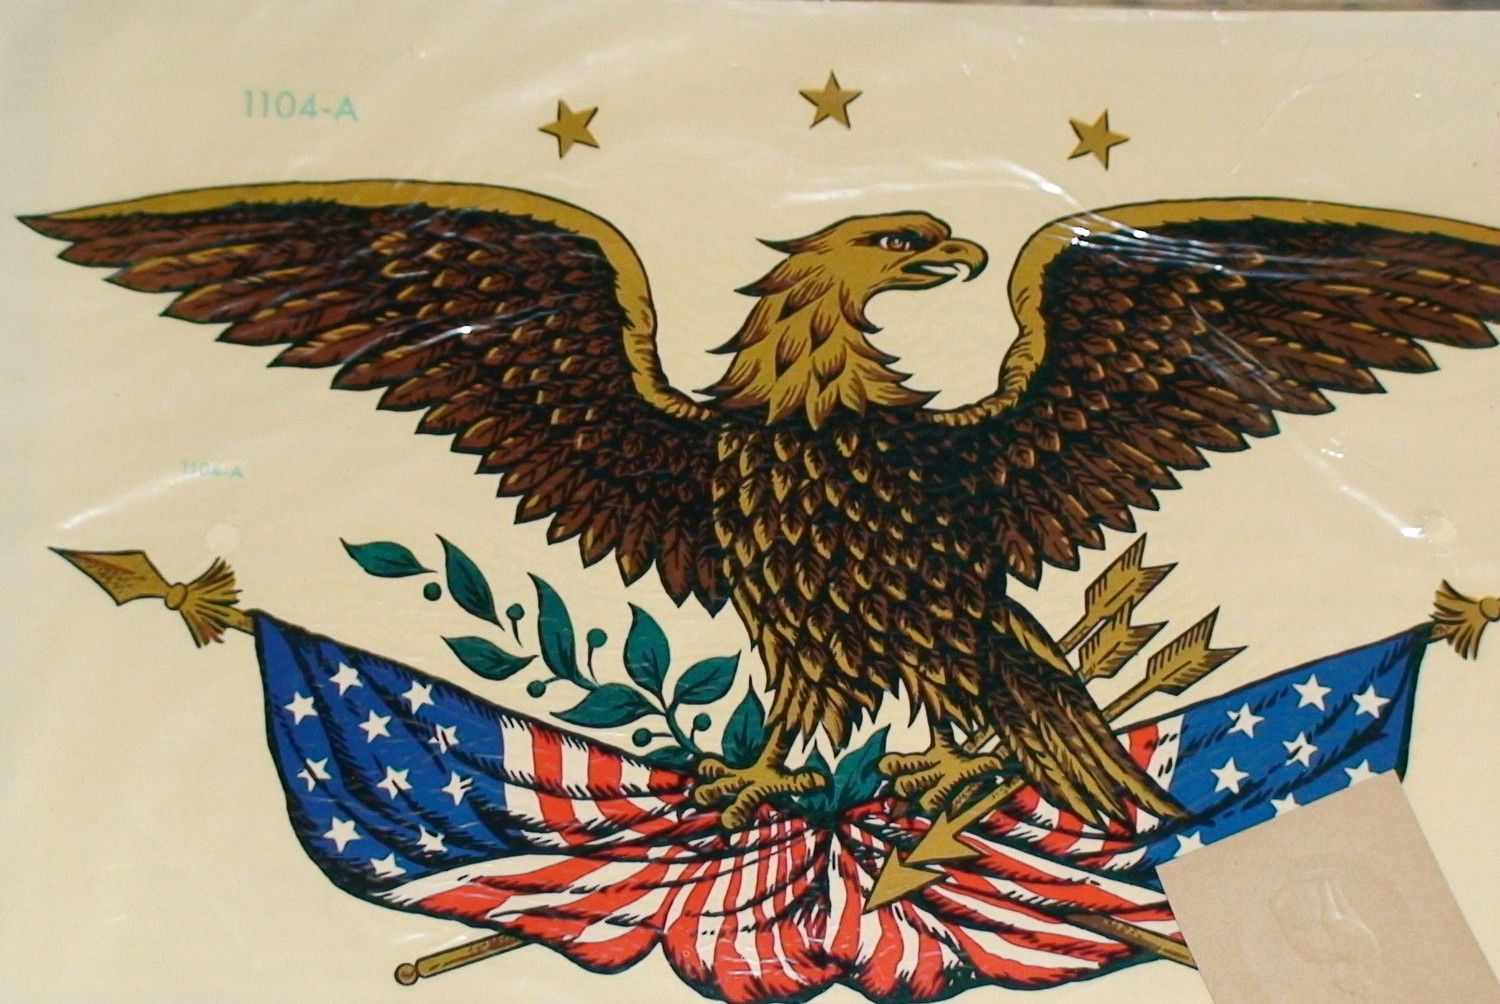 Two Vintage Patriotic American Eagle Decals By